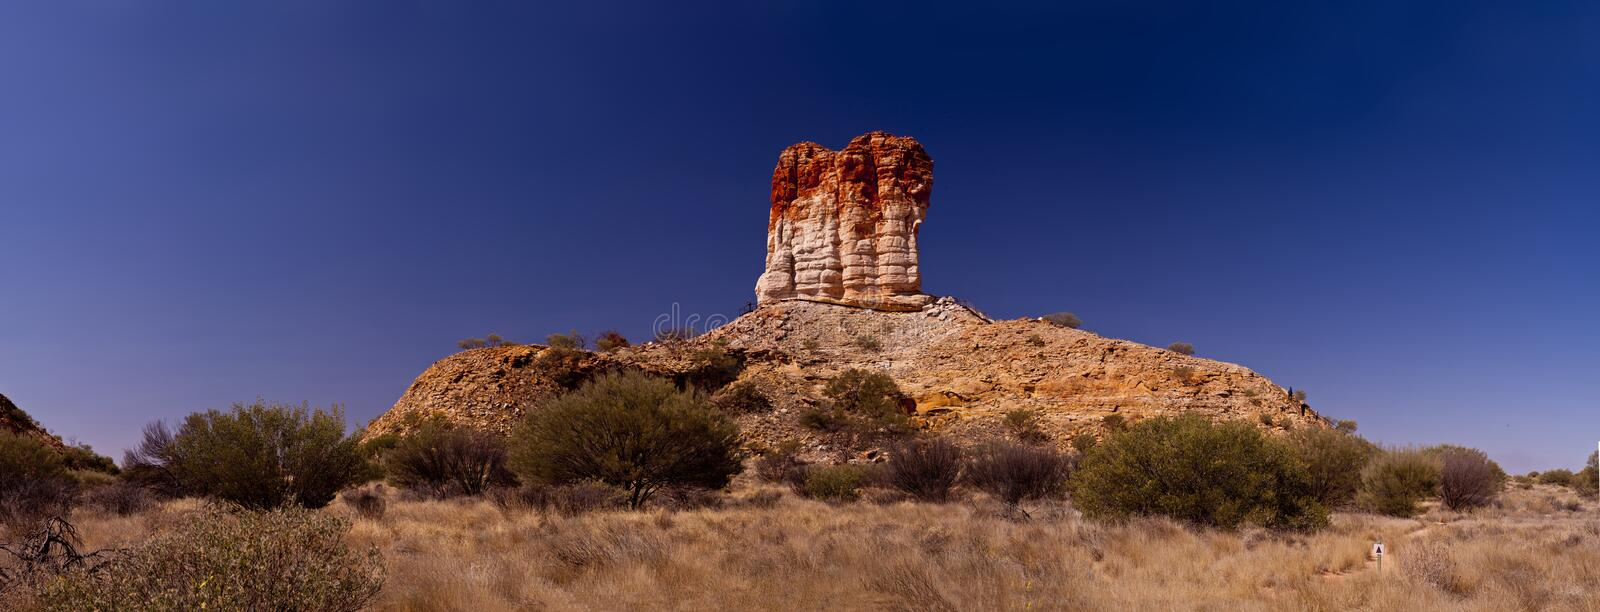 Chambers Pillar. (Aboriginal name 'Idracowra' or 'Etikaura') is a sandstone formation some 160 km south of Alice Springs in the Northern Territory of Australia royalty free stock photography